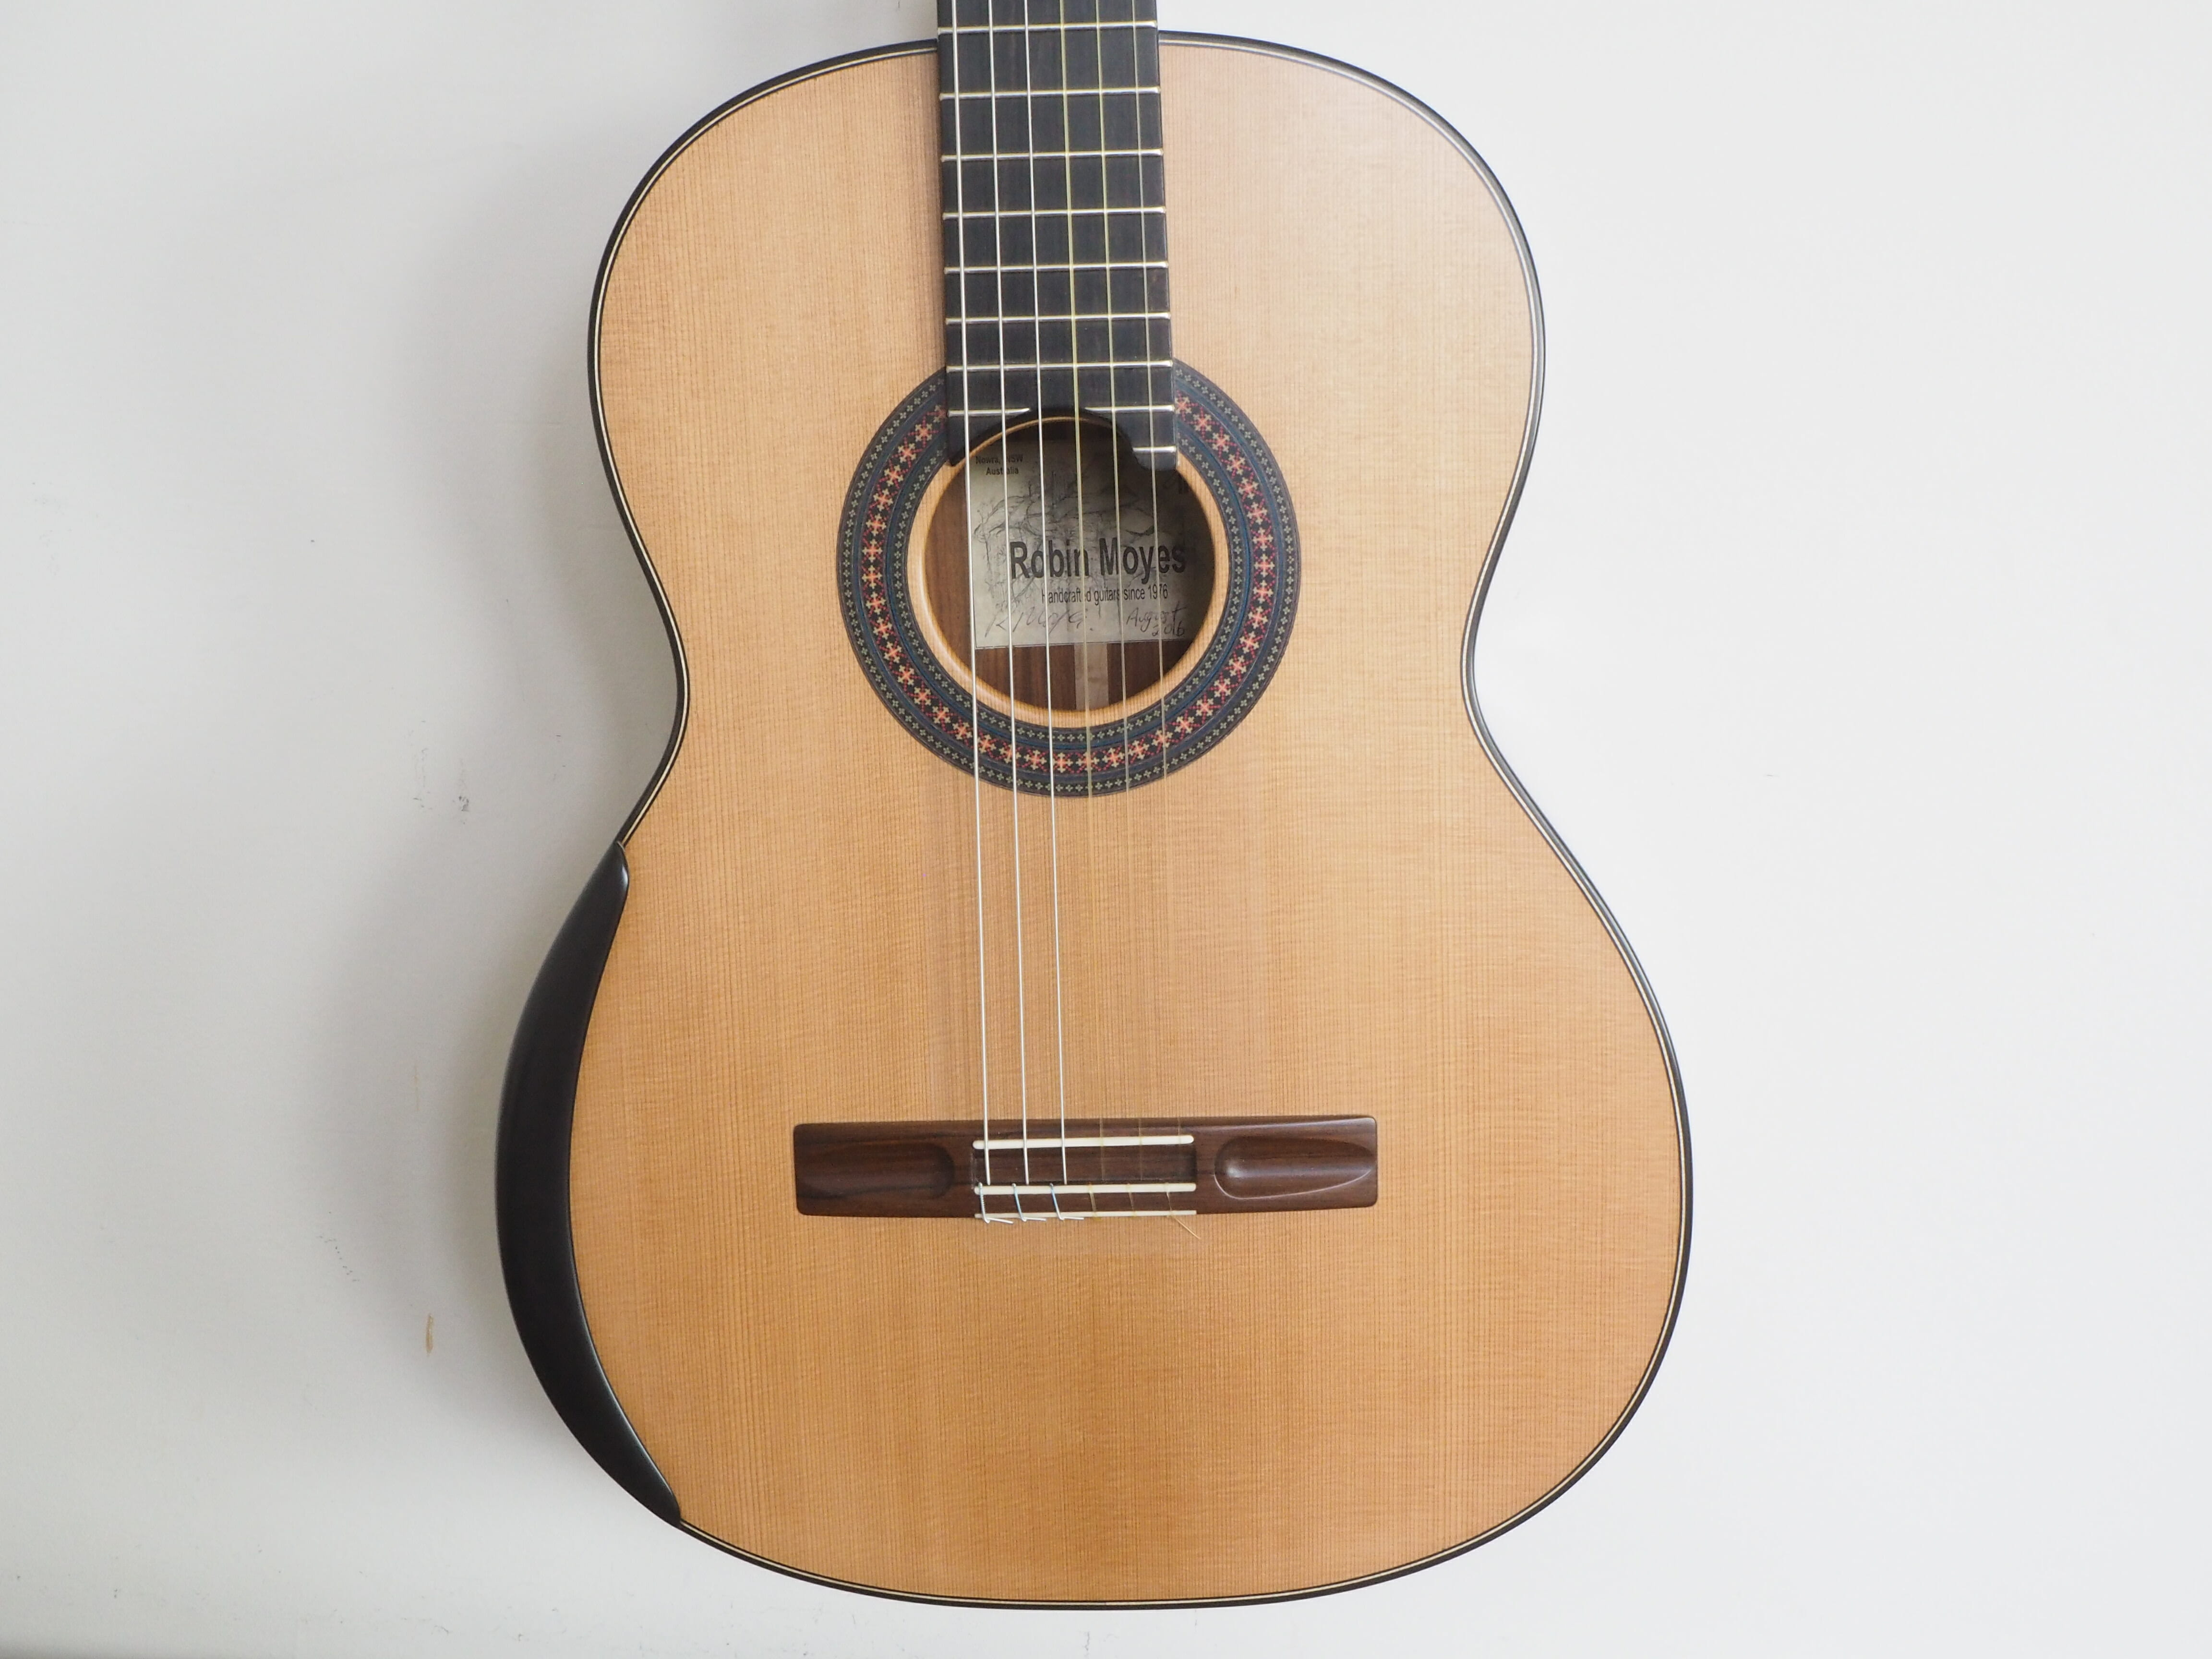 Robin Moyes luthier guitare classique